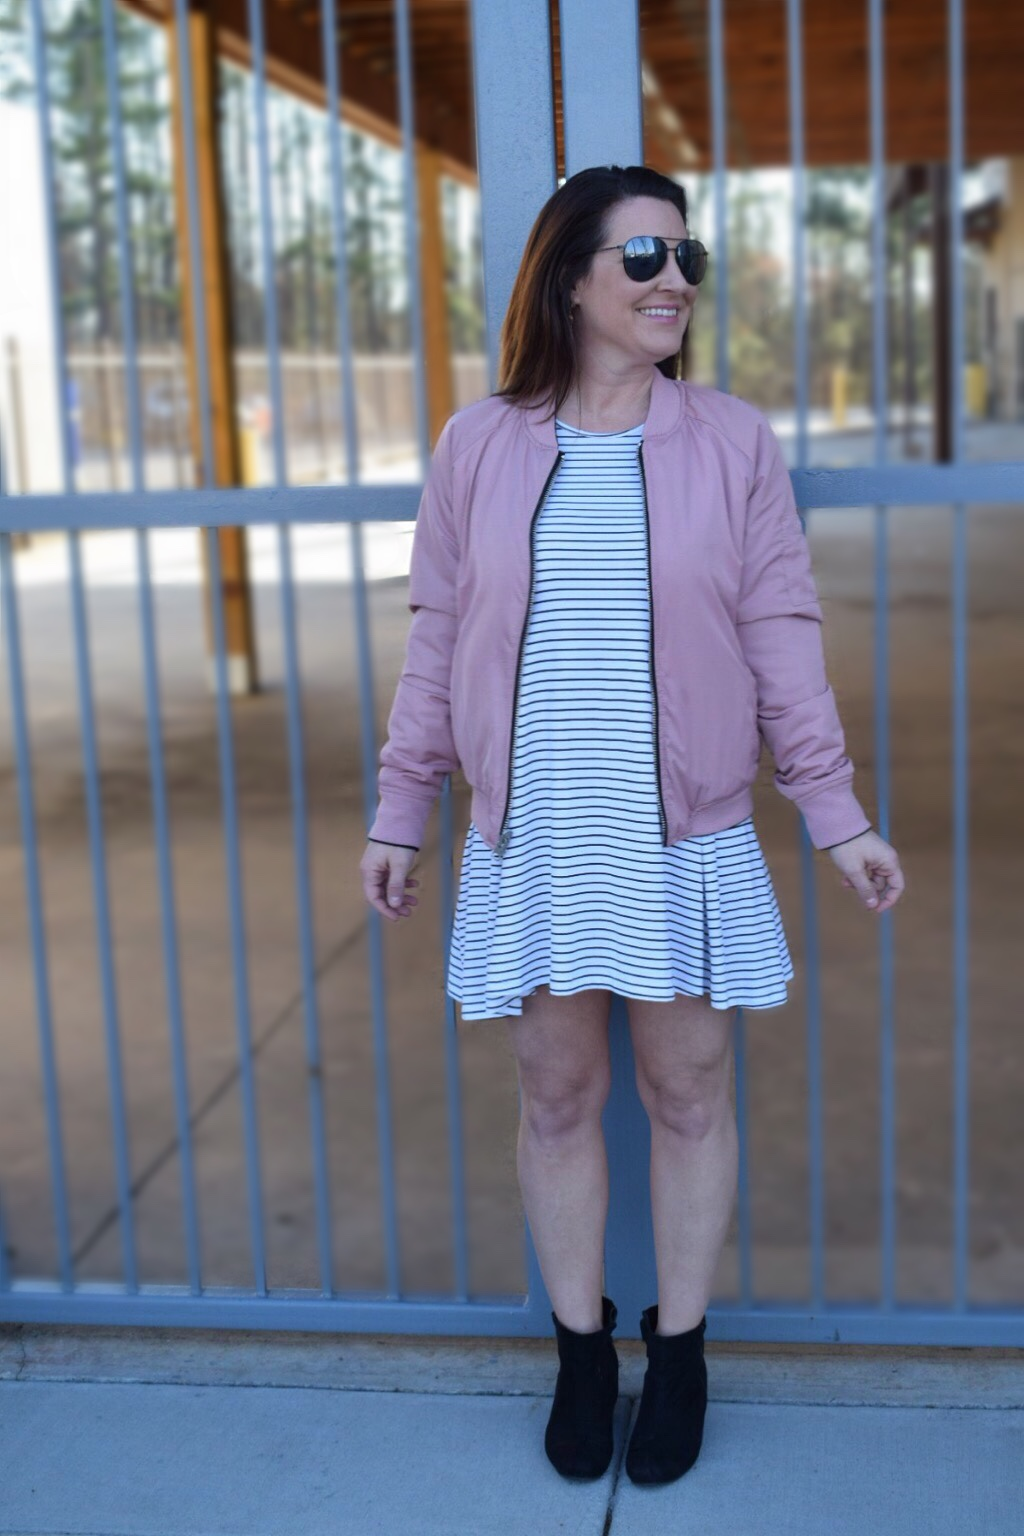 Blush Bomber Jacket with a black and white striped t shirt dress and black booties